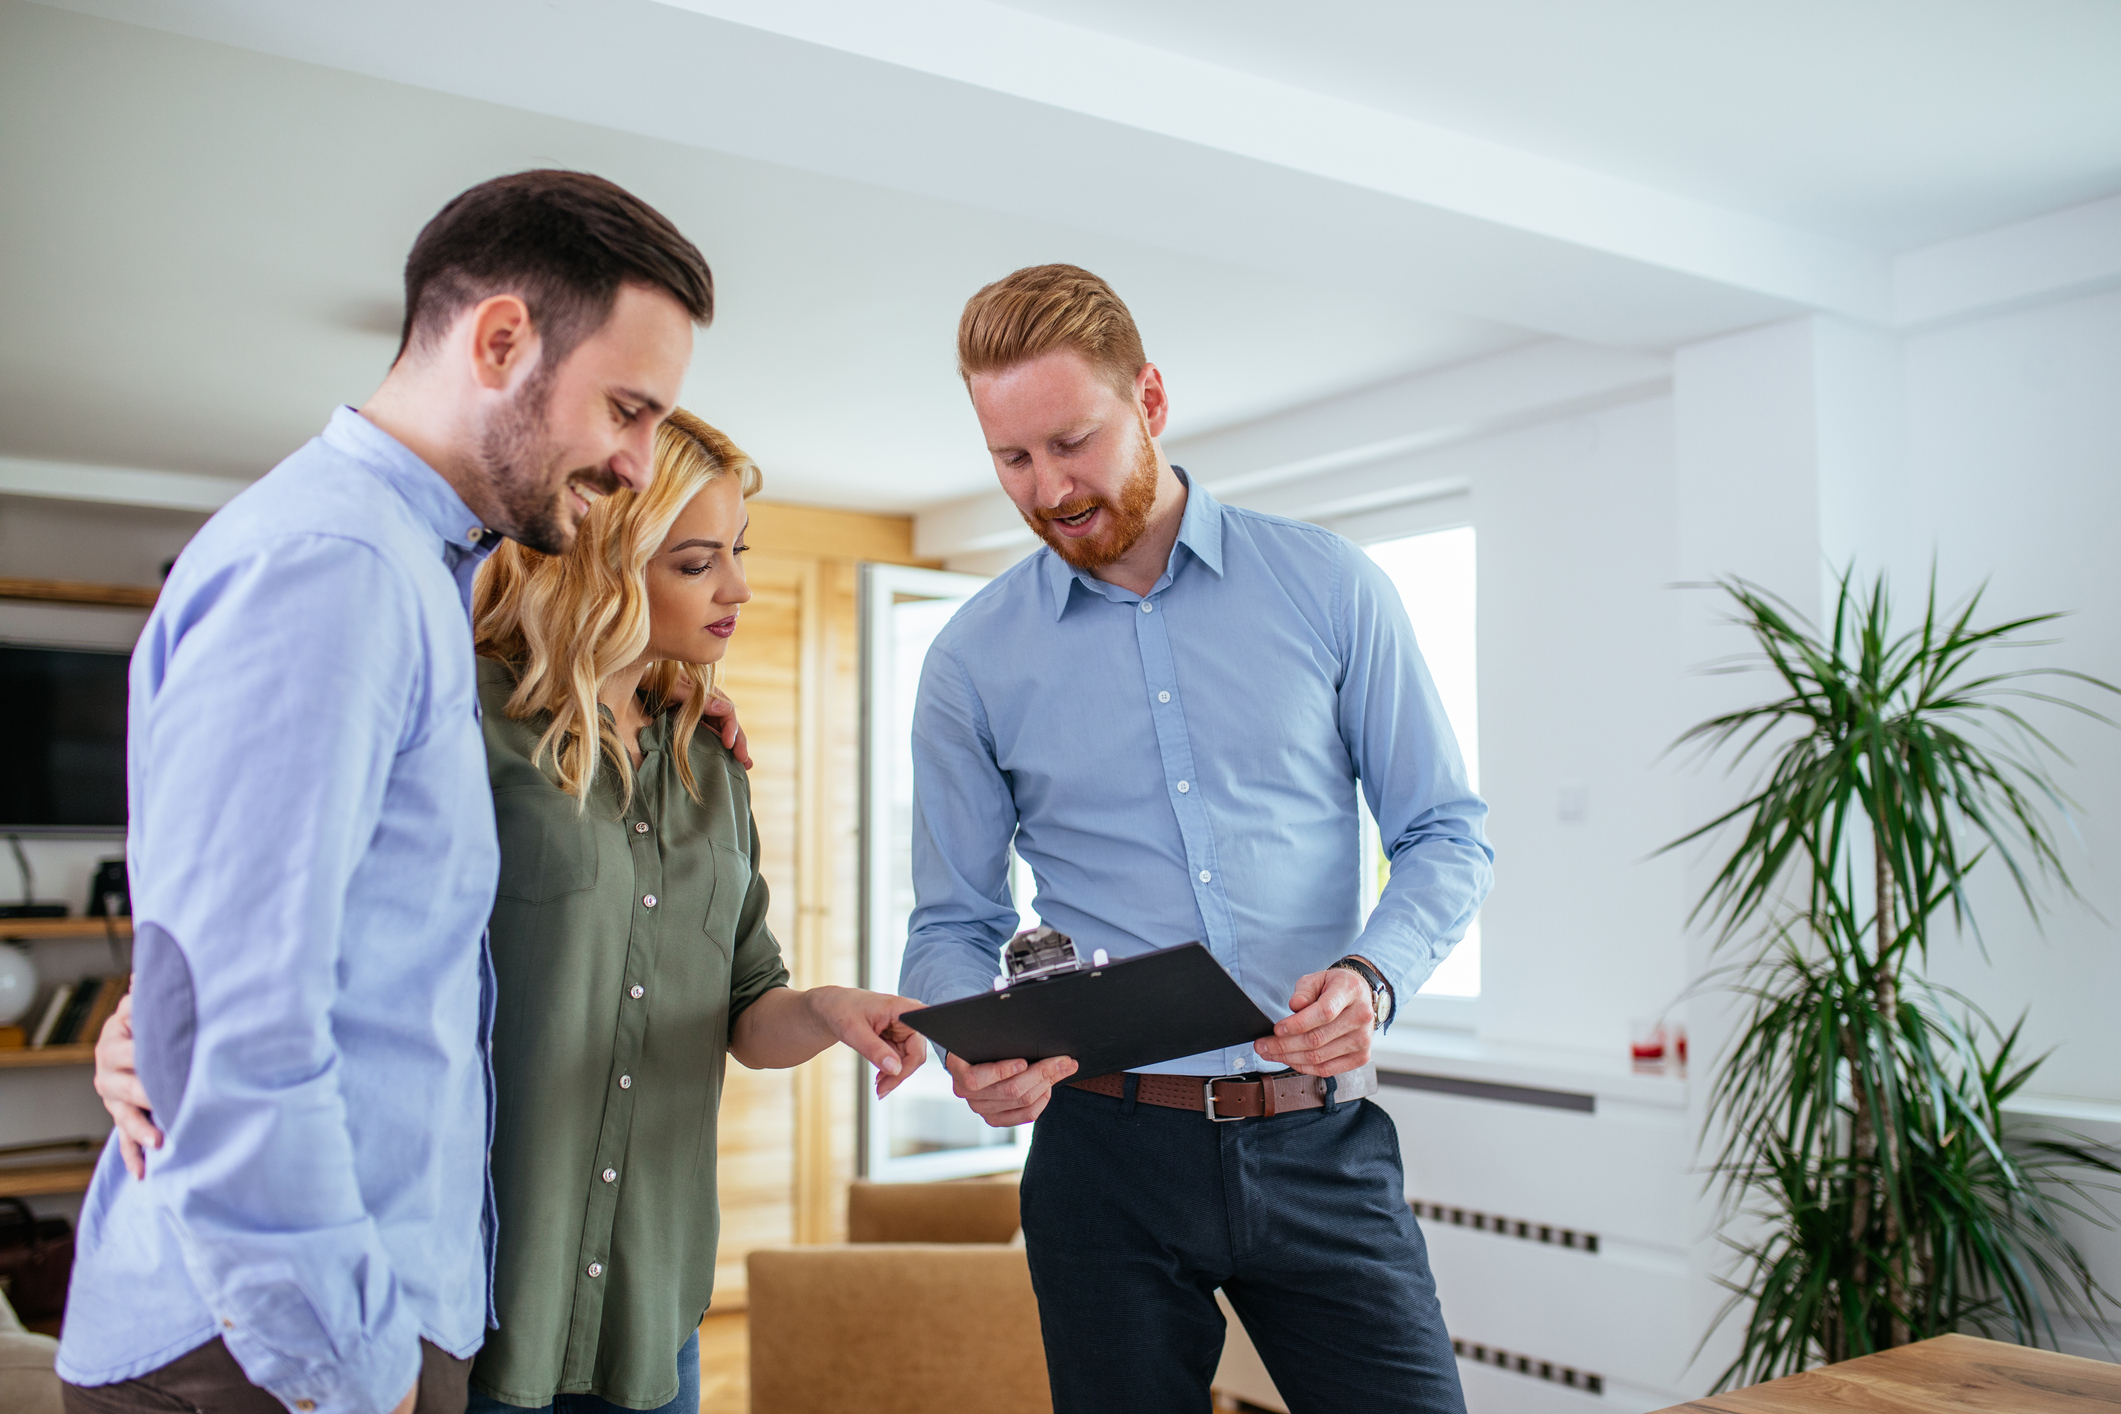 Do You Want To Invest In Real Estate? Try These Tips And Tricks